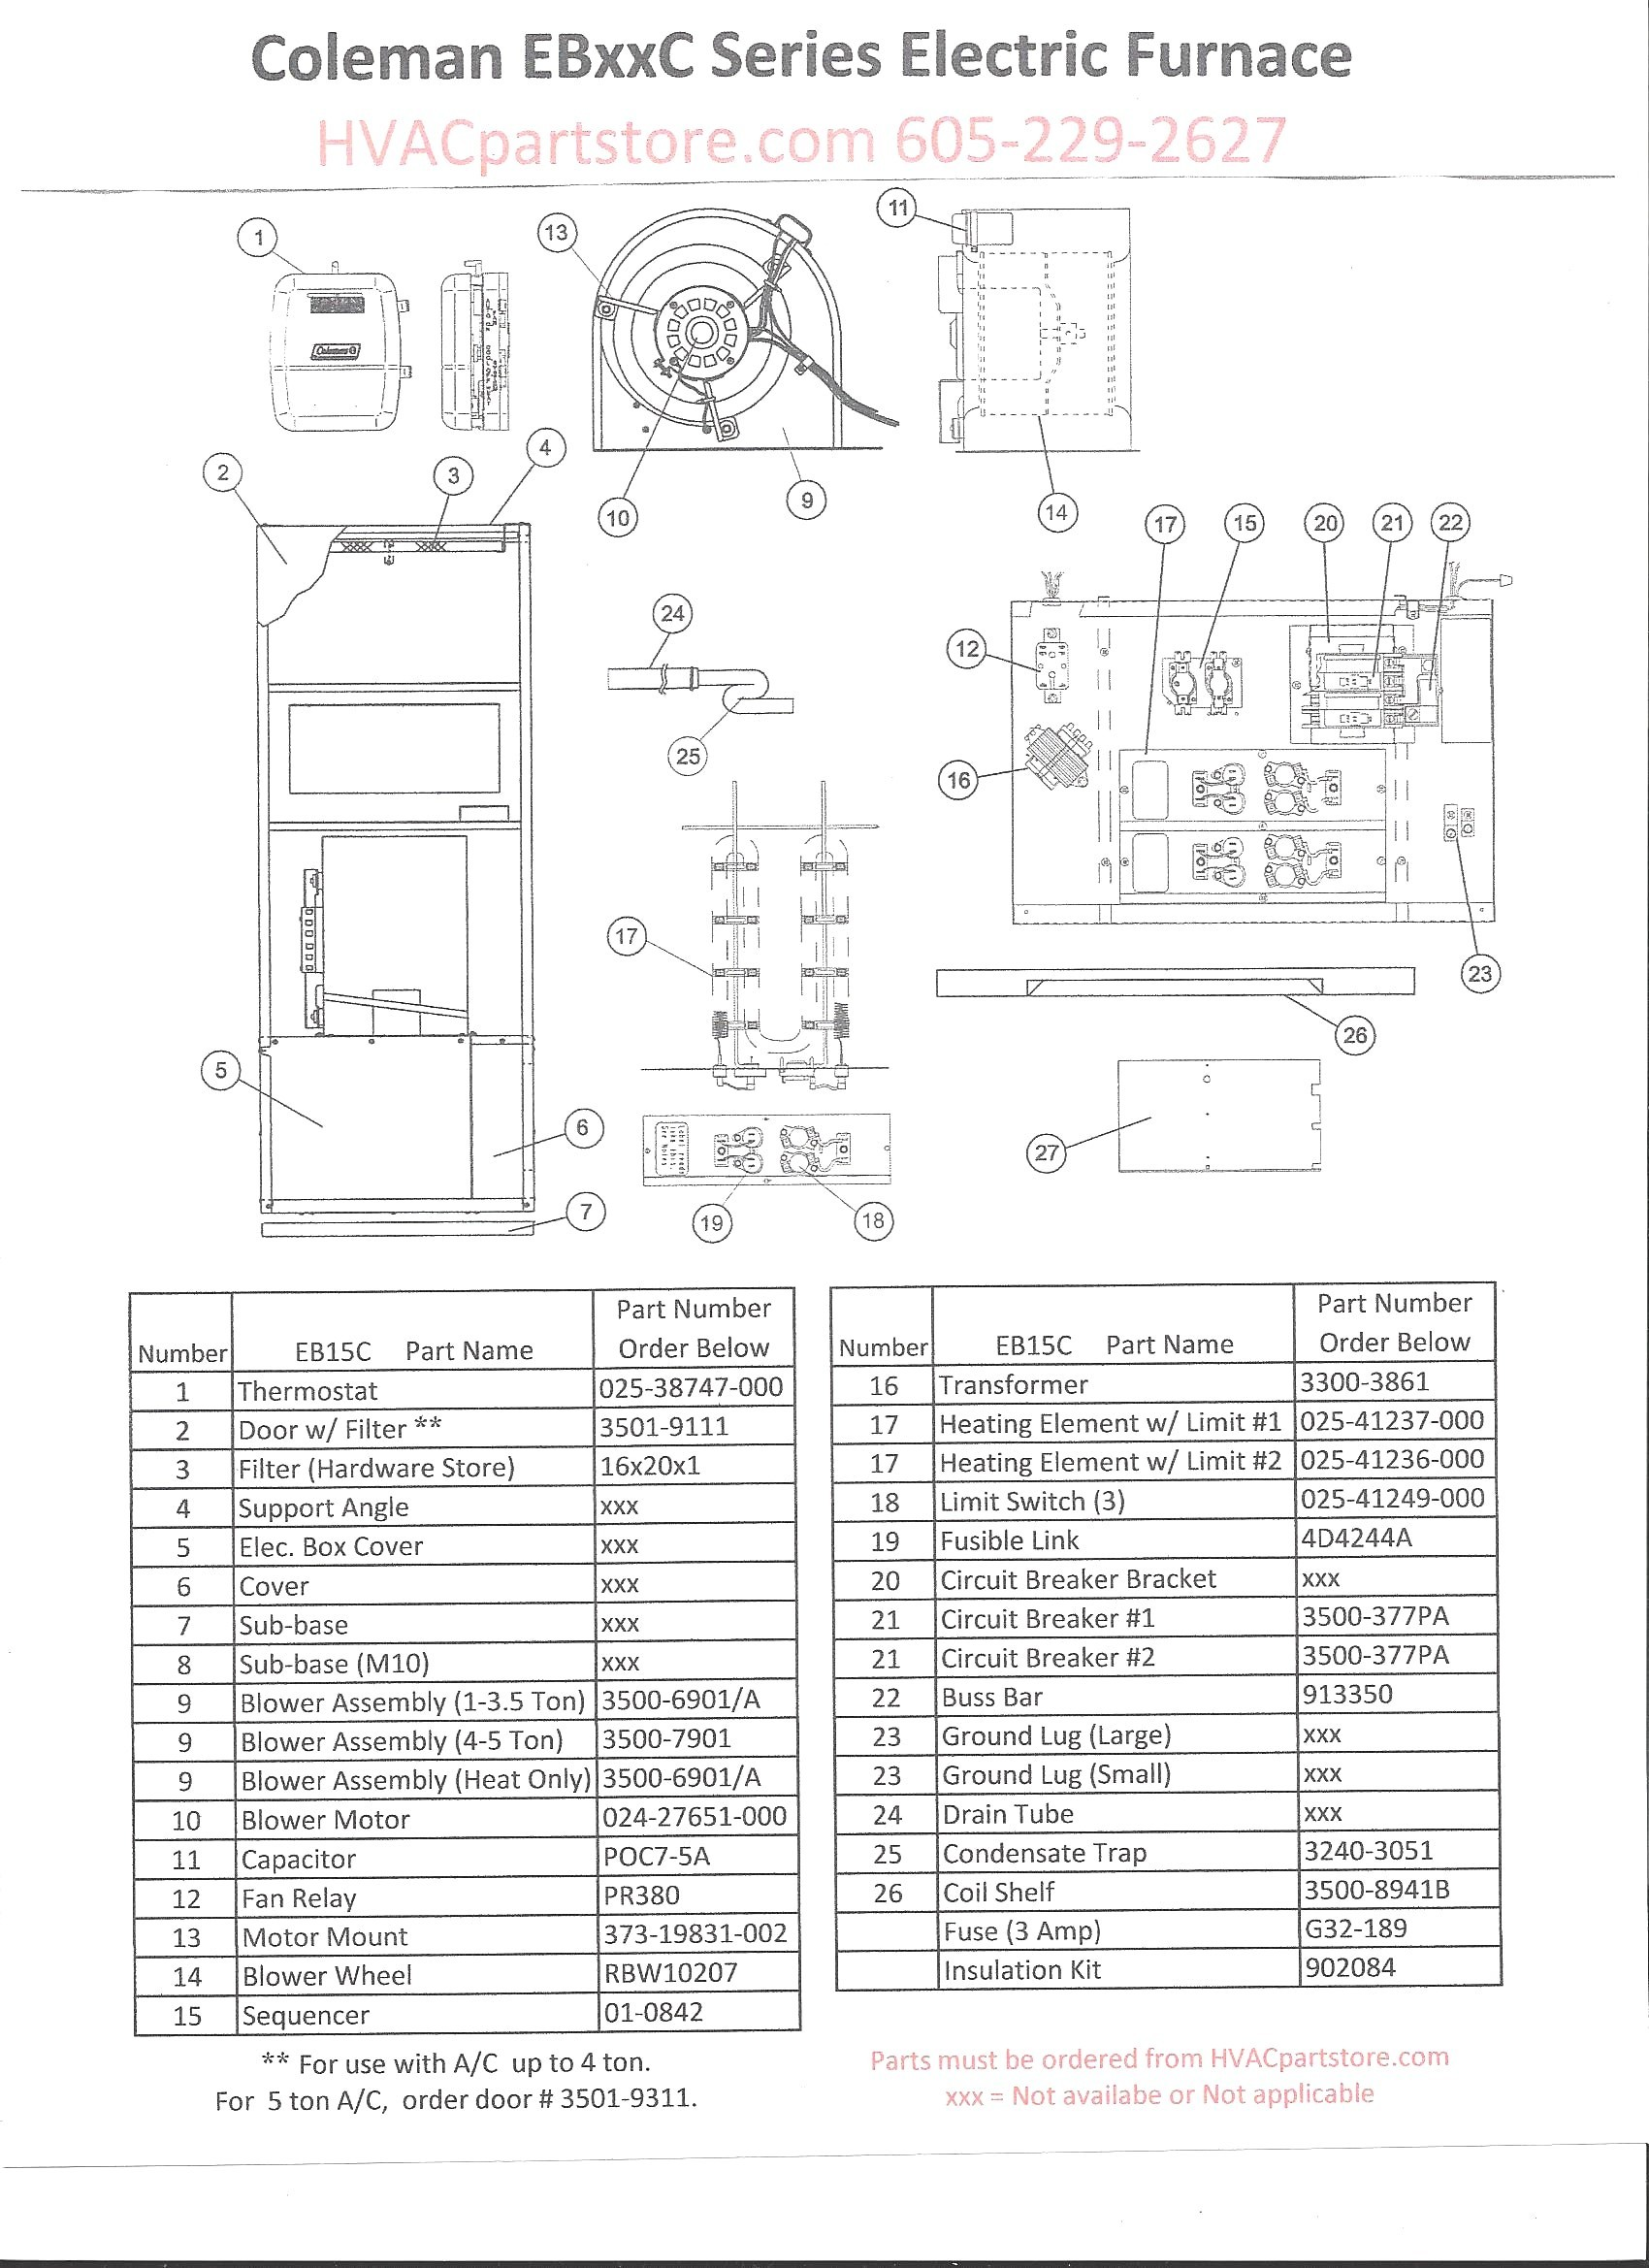 Coleman Electric Furnace Wiring Diagram My Wiring DIagram